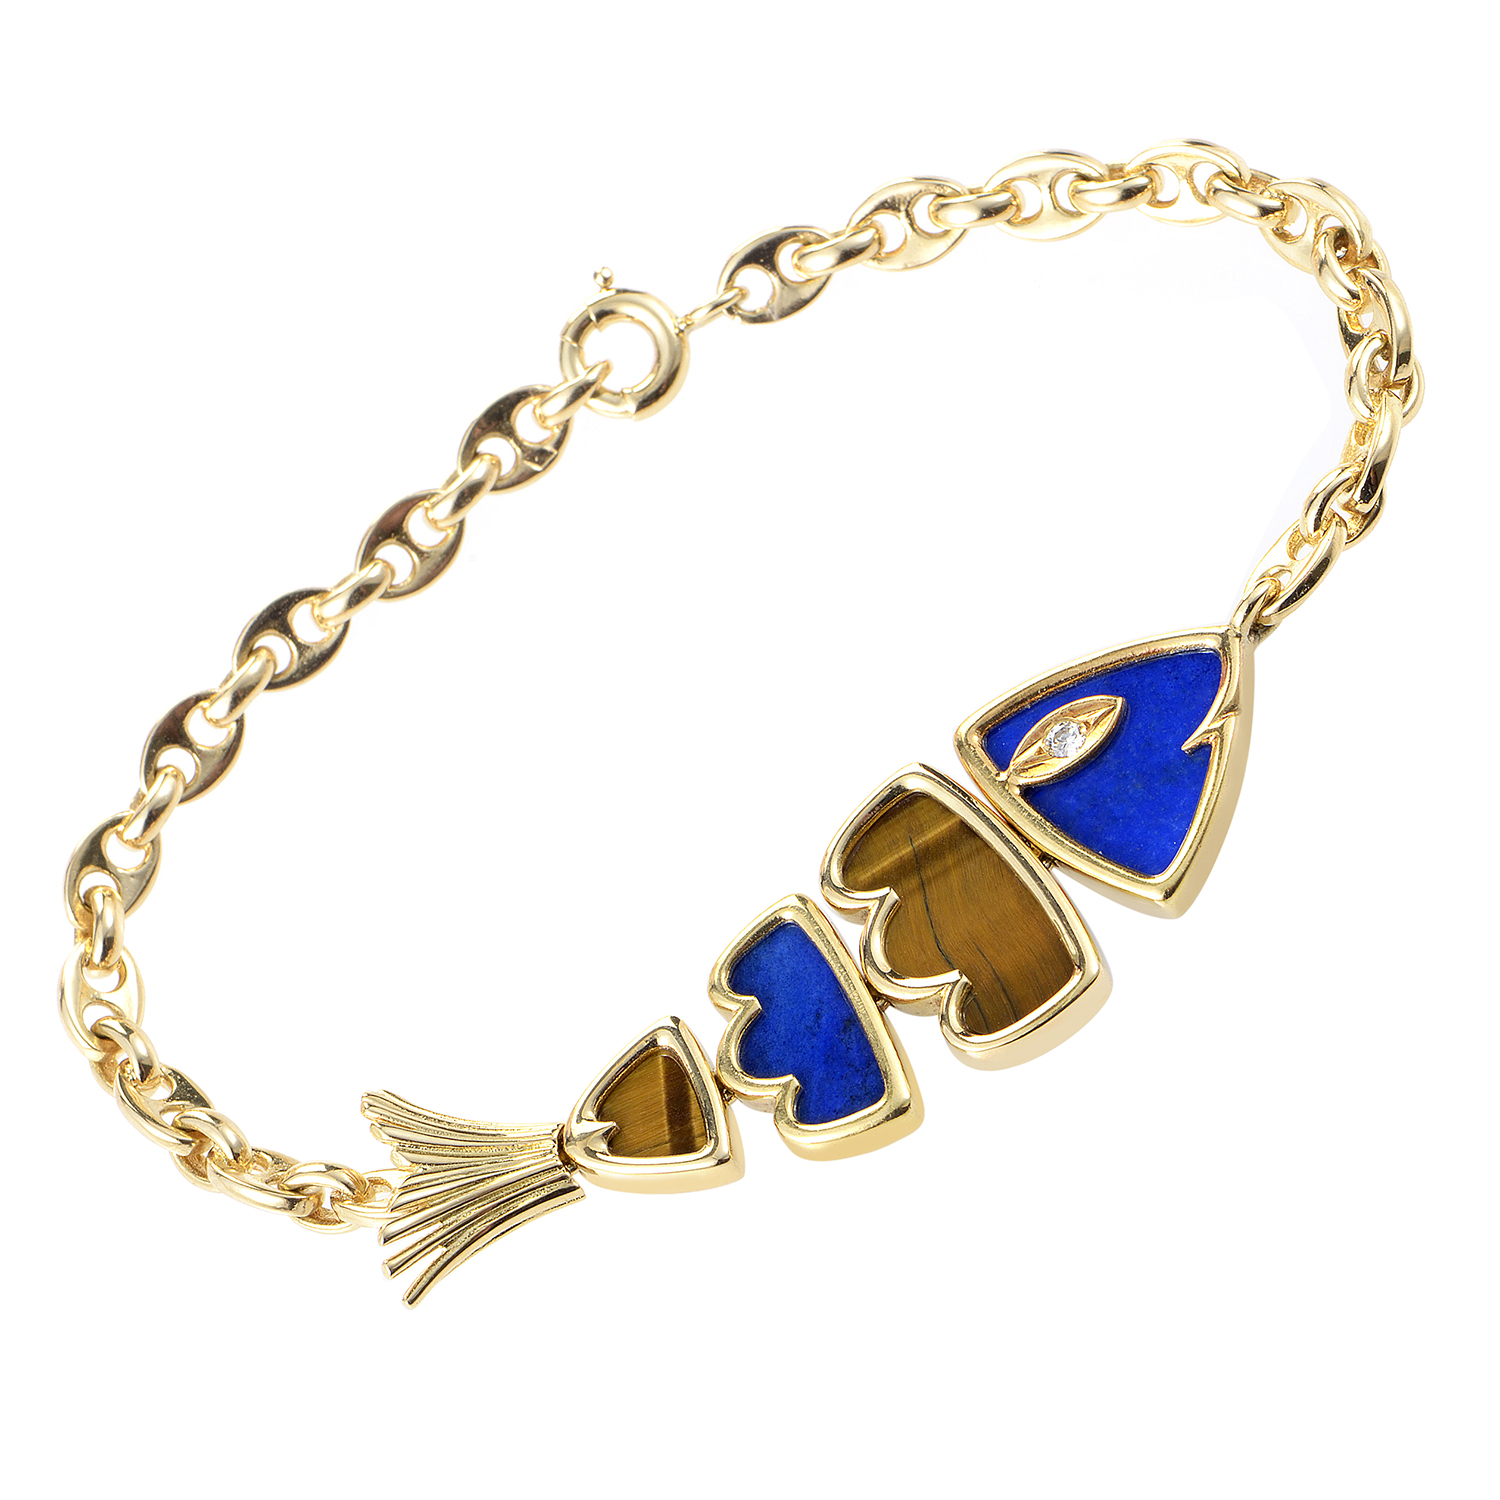 Van Cleef & Arpels 18K Yellow Gold Lapis Lazuli  & Tiger's Eye Fish Bracelet